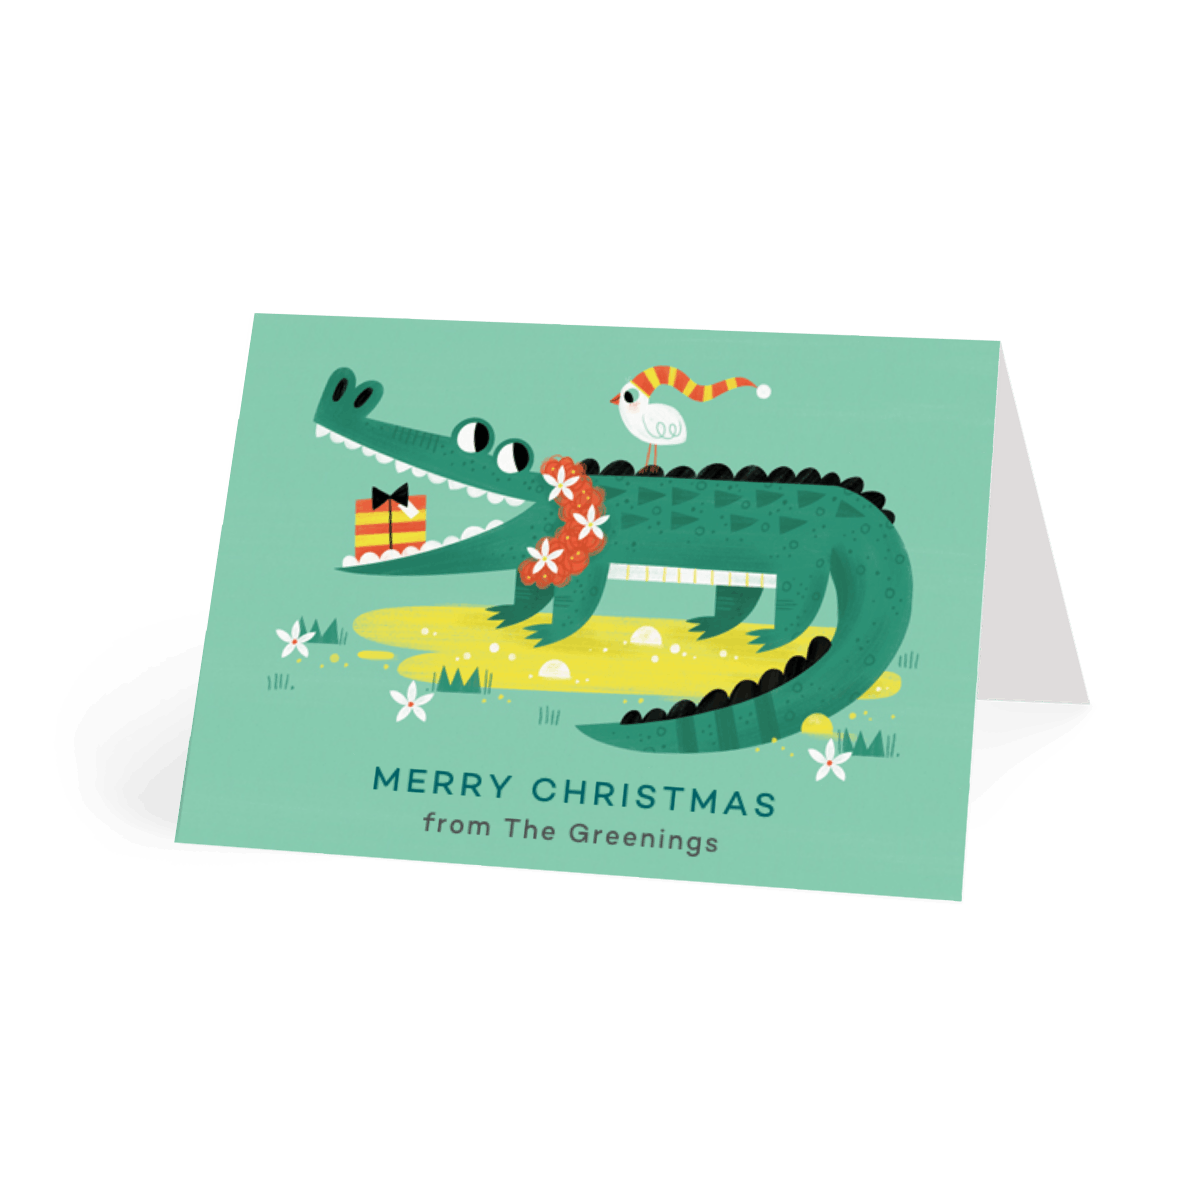 Https%3a%2f%2fwww.papier.com%2fproduct image%2f92173%2f14%2fchristmas alligator 23010 front 1571405706.png?ixlib=rb 1.1